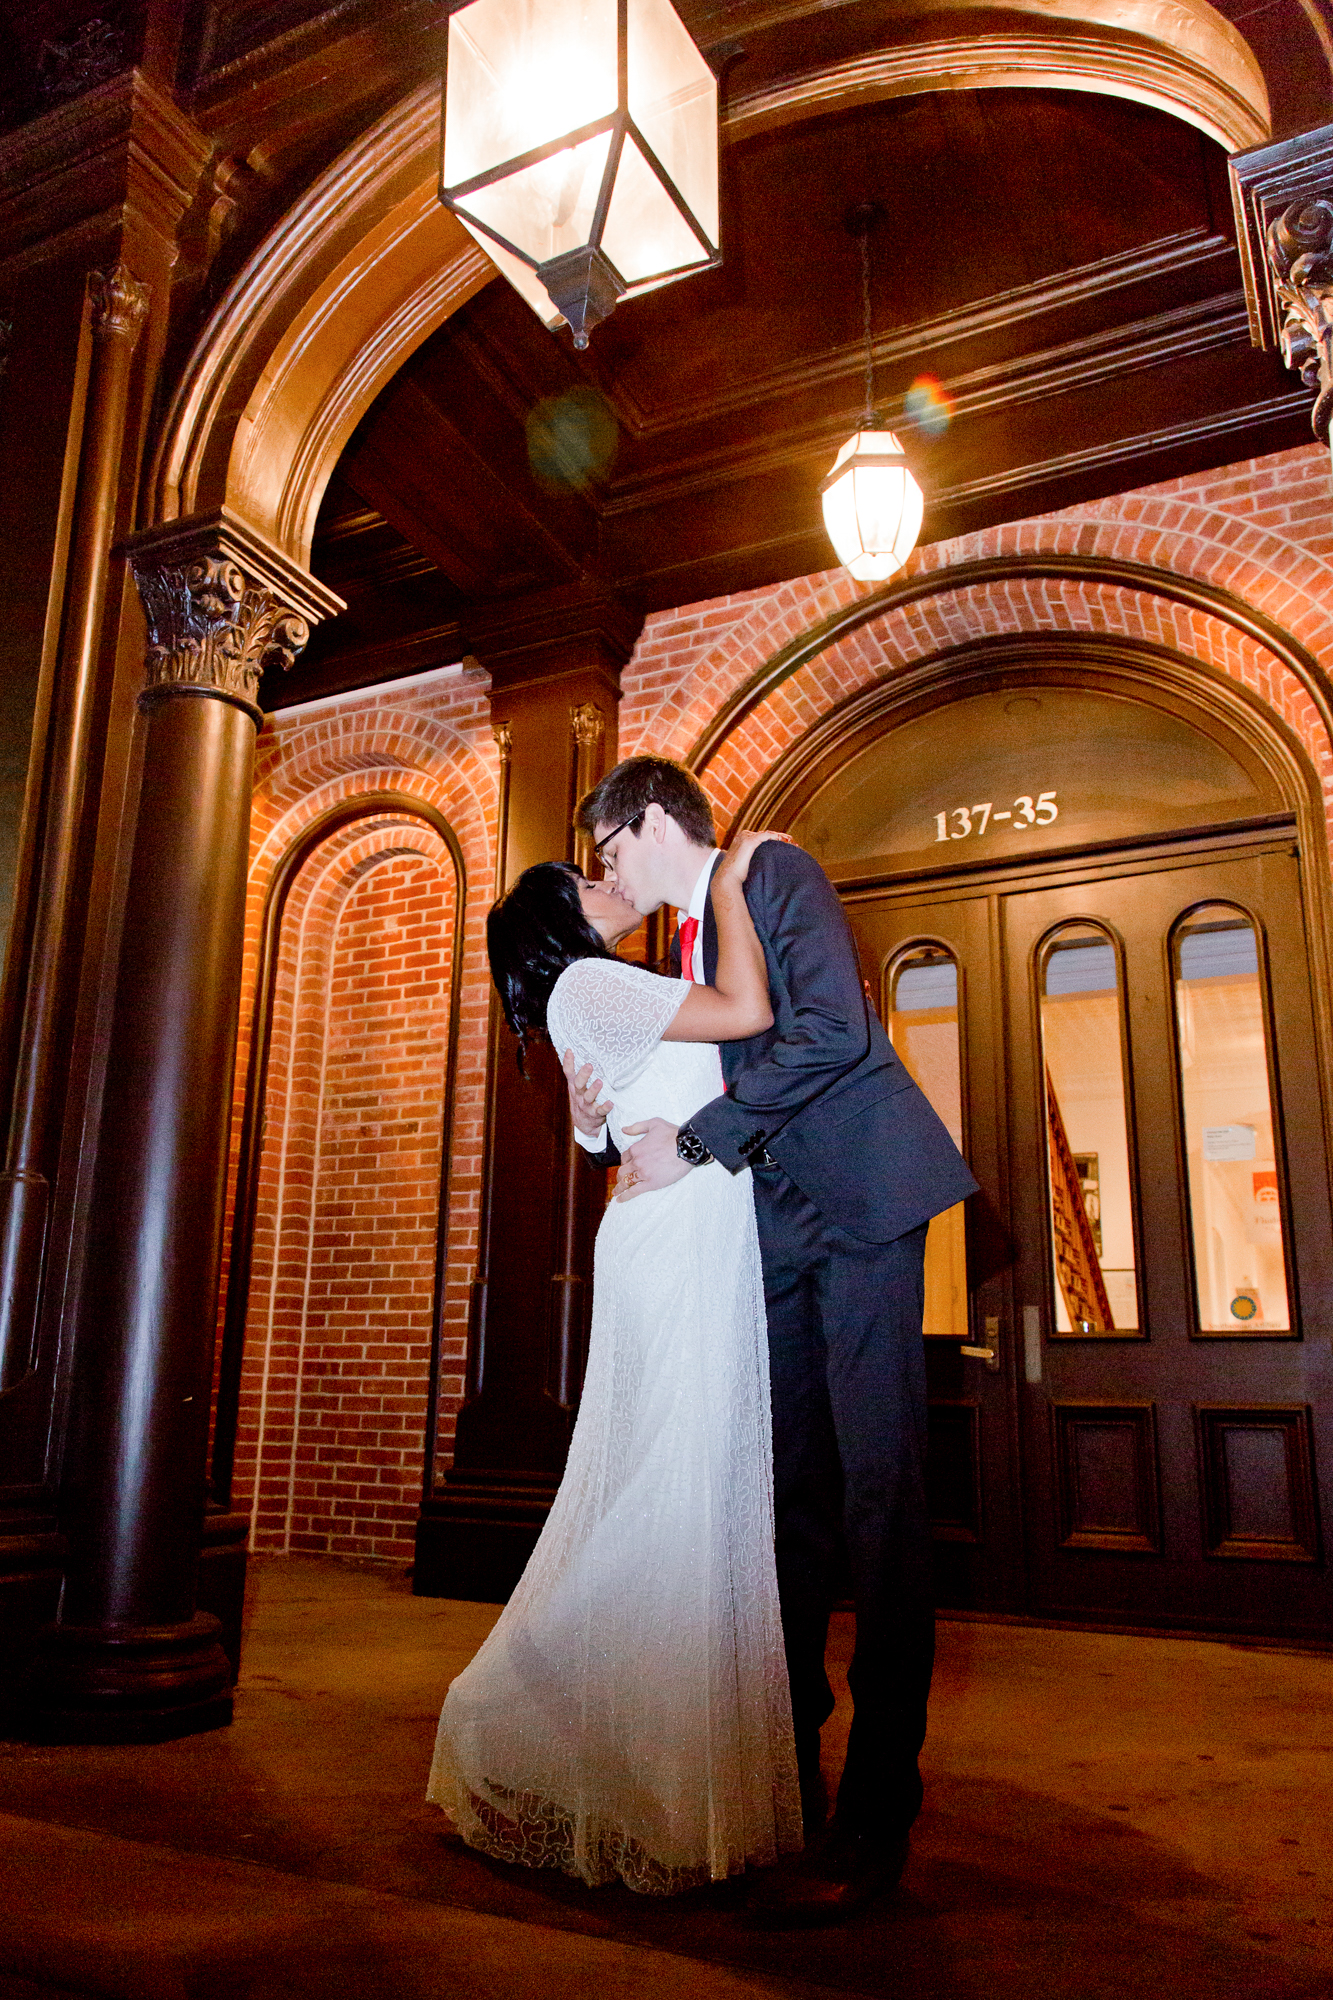 095_CarlyGaebe_SteadfastStudio_WeddingPhotography_NewYorkCity_Queens_FlushingTownHall_Smithsonian_Bride_Groom.jpg